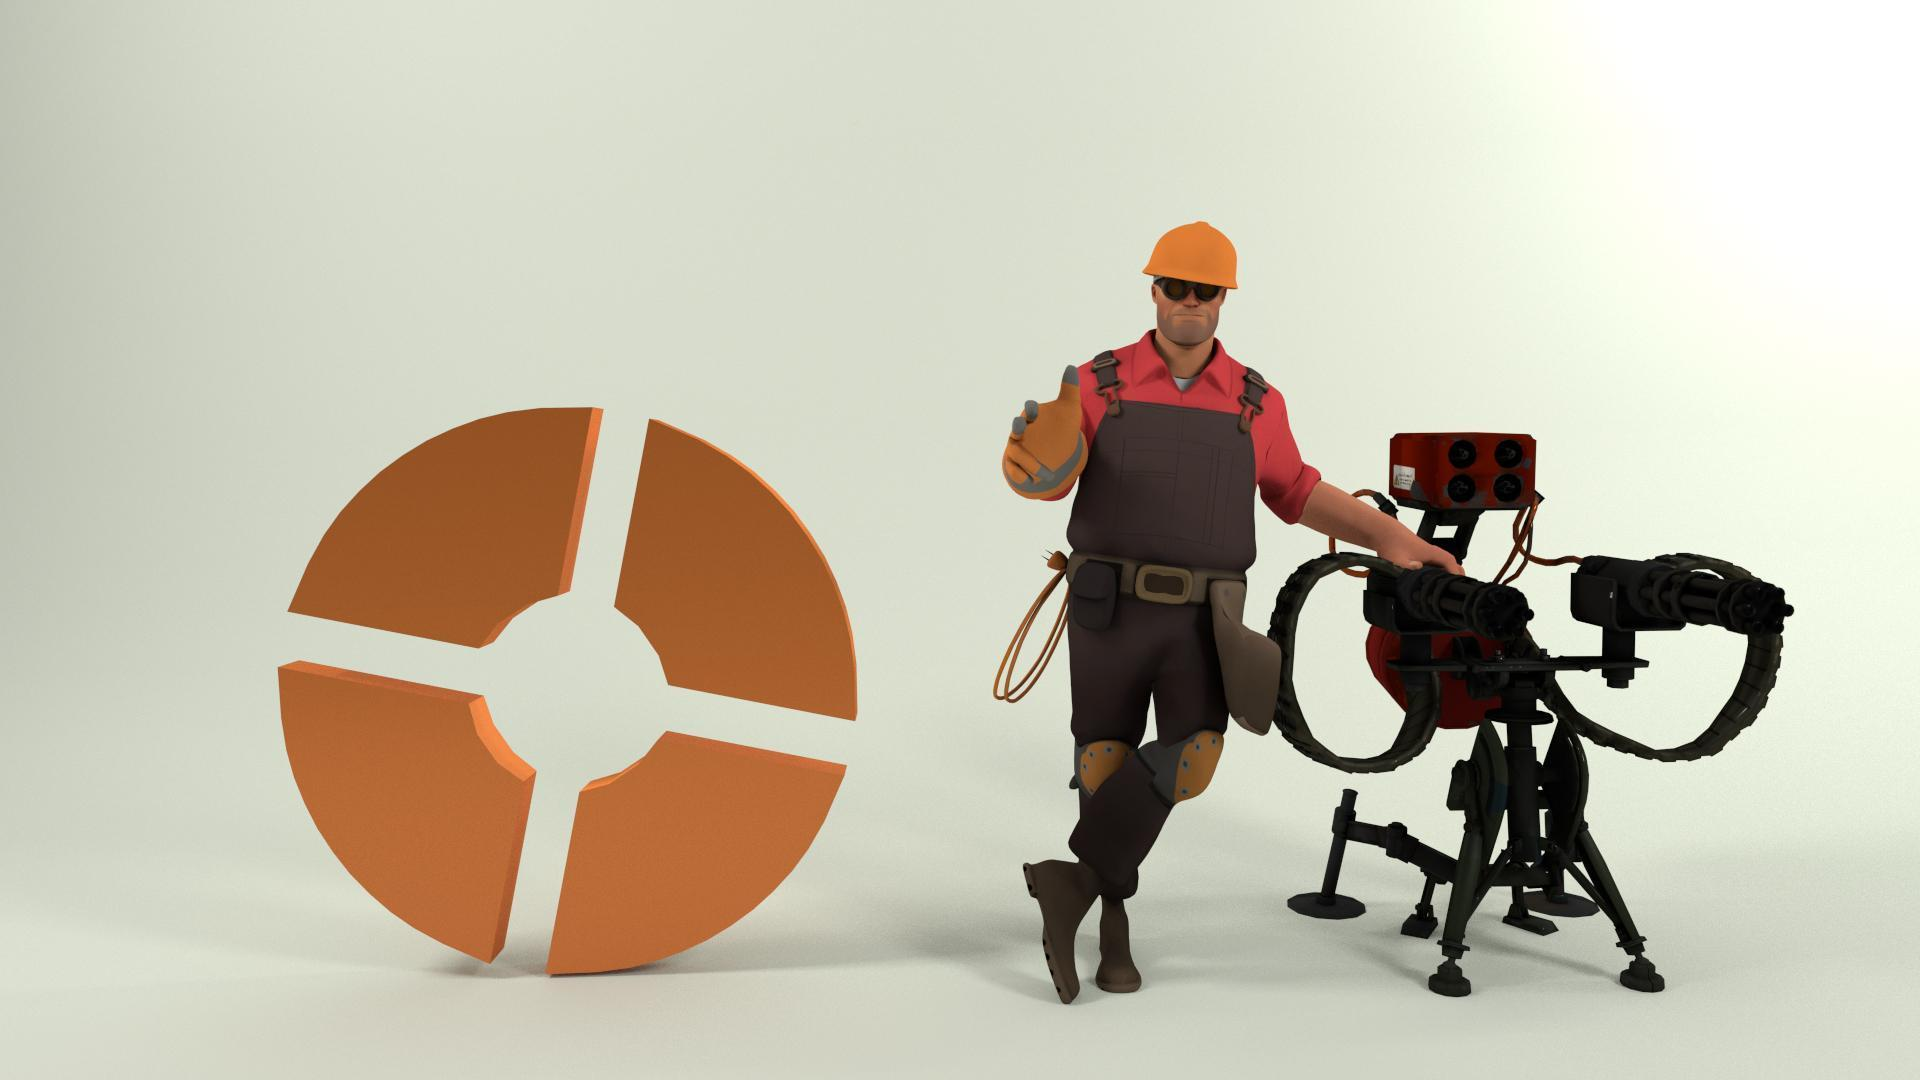 team fortress 2 engineer wallpapers wallpaper cave. Black Bedroom Furniture Sets. Home Design Ideas